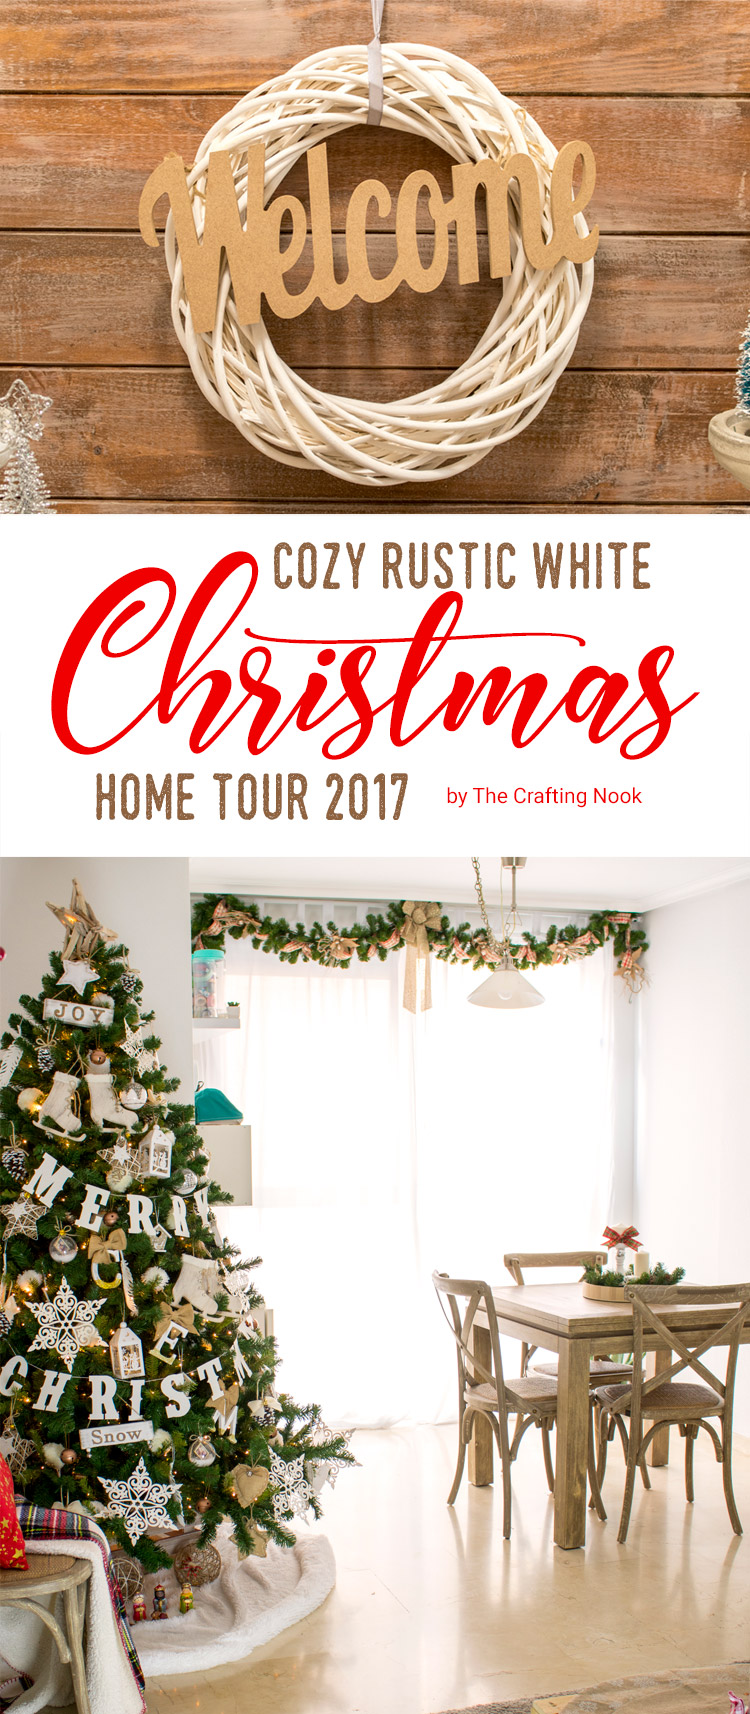 Cozy Rustic White Christmas Home Tour 2017